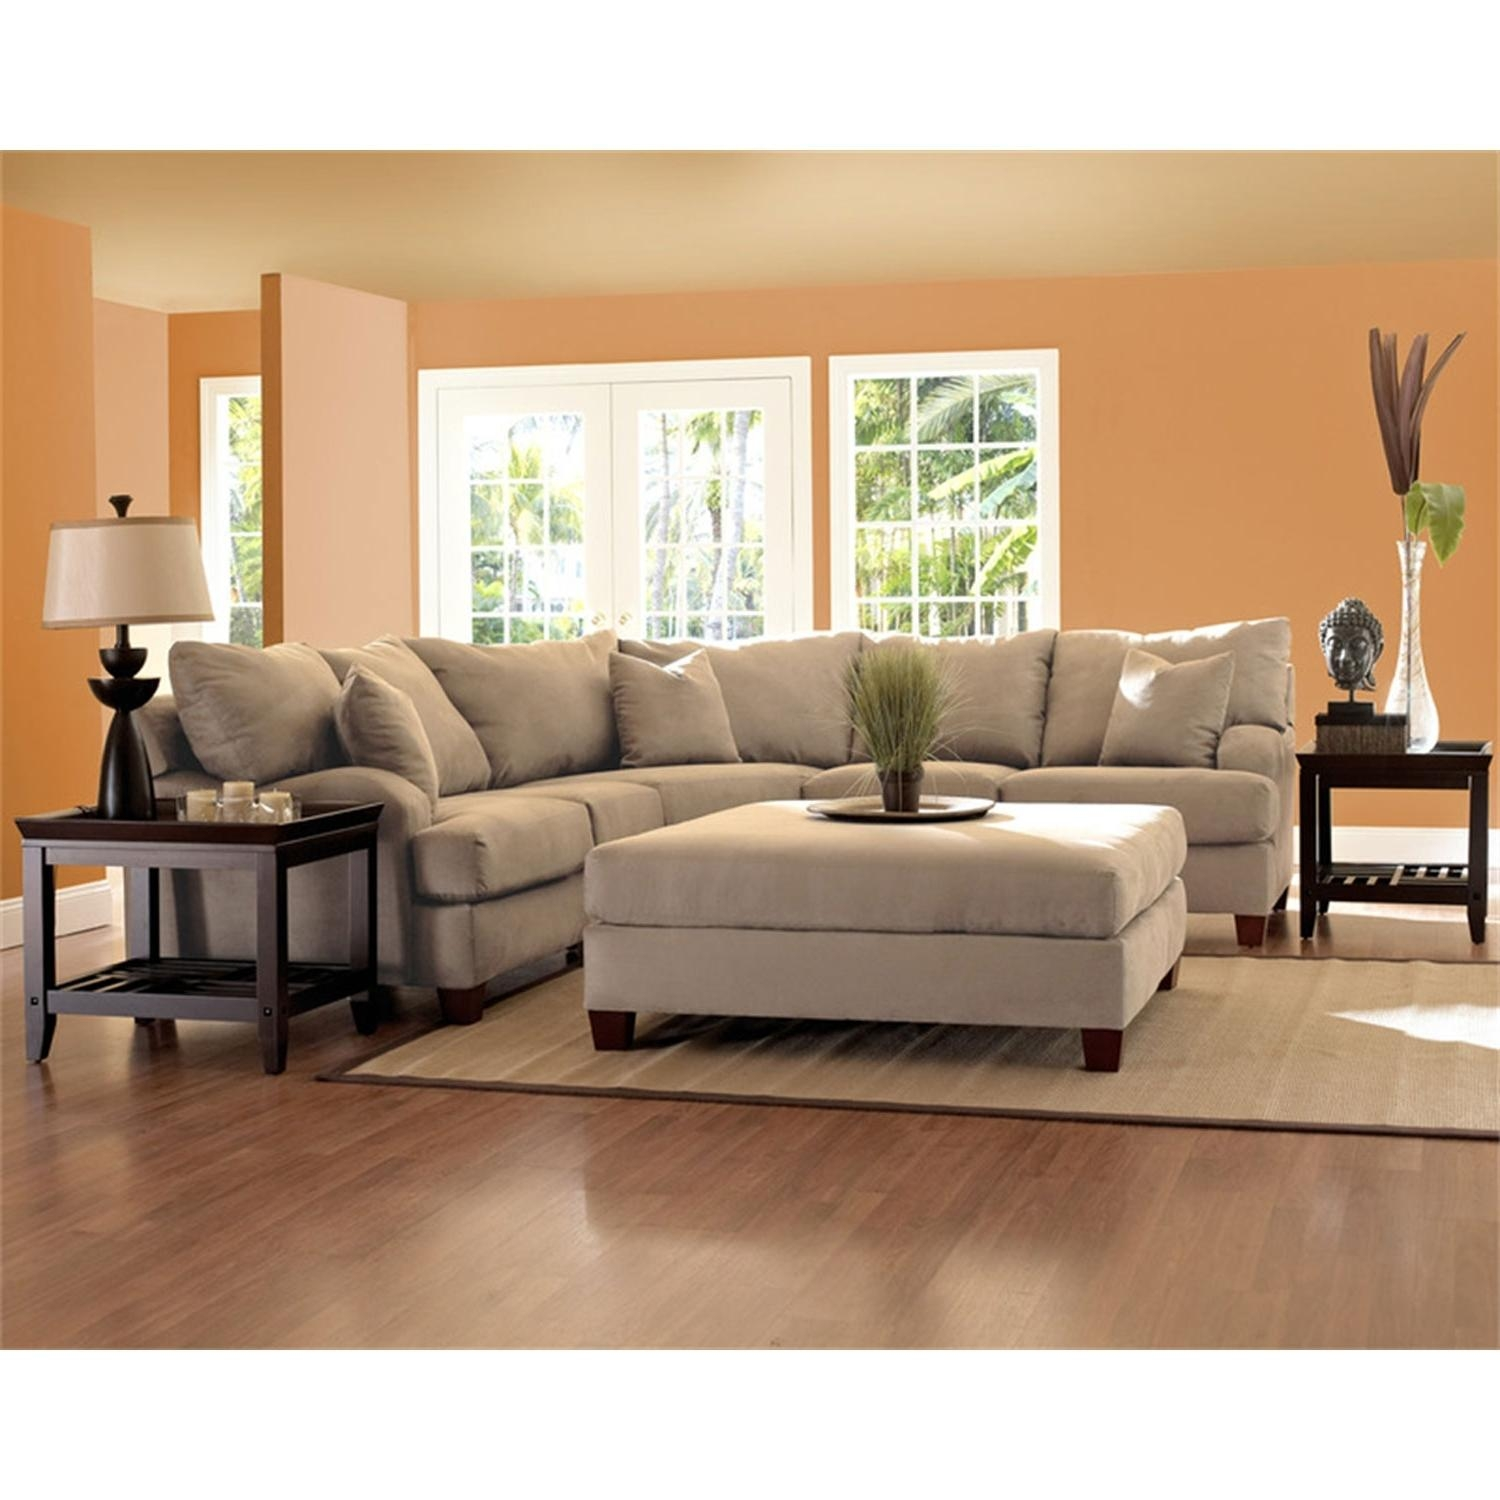 Colorful Sofas 15 Best Ideas Camel Colored Sectional Sofa Sofa Ideas